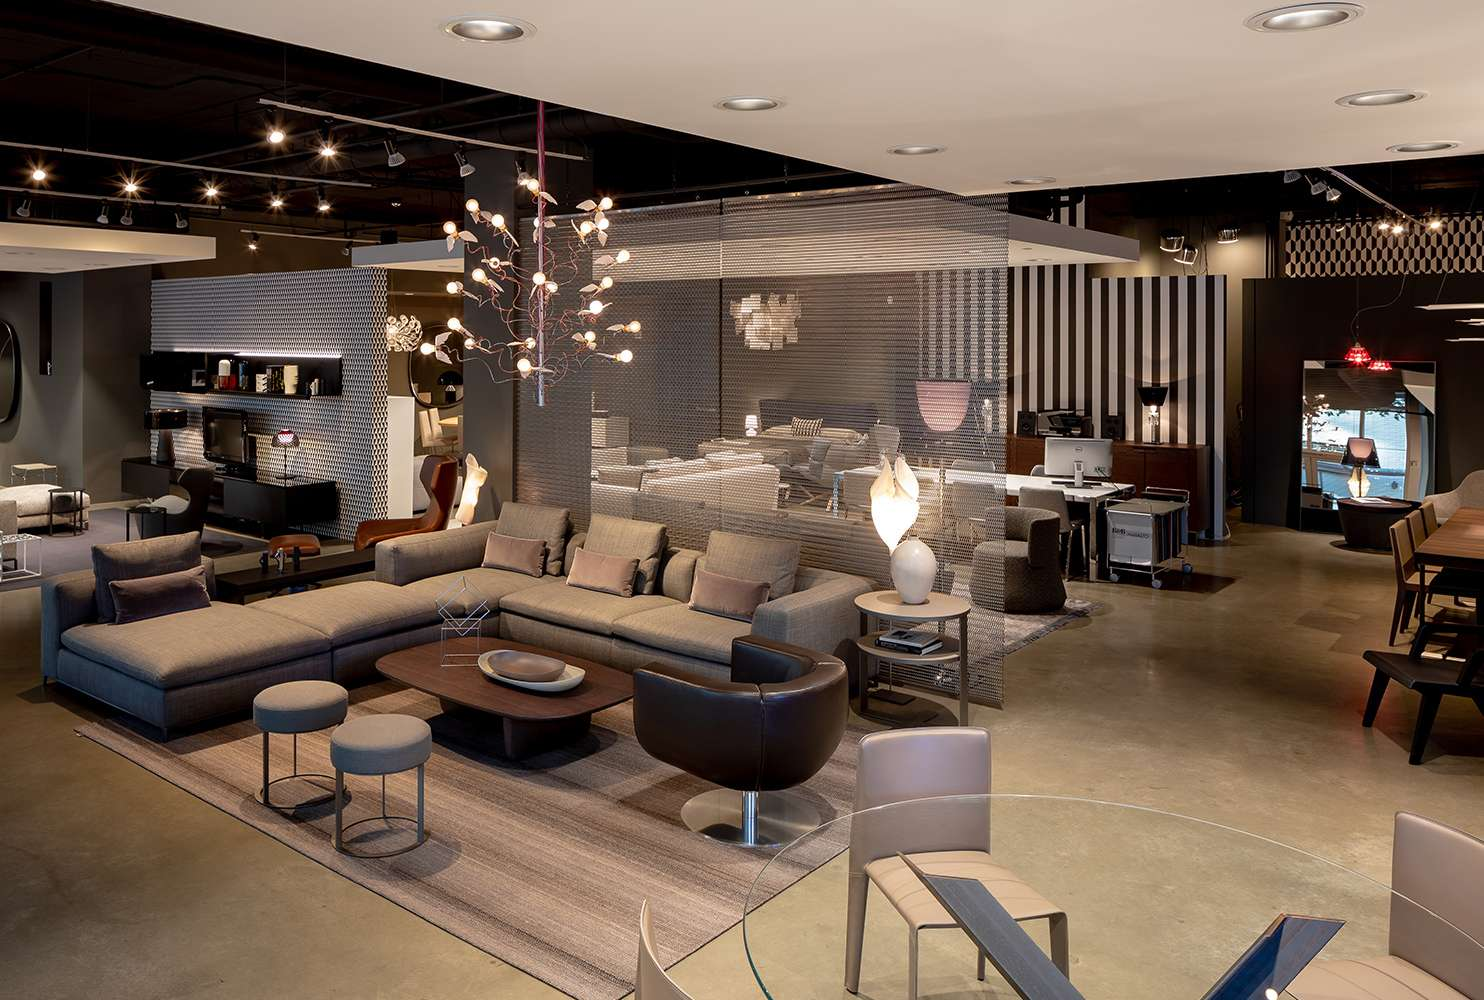 The Top Furniture Shops & Showrooms In Seattle showrooms in seattle The Top Furniture Shops & Showrooms In Seattle The Top Furniture Shops Showrooms In Seattle 7